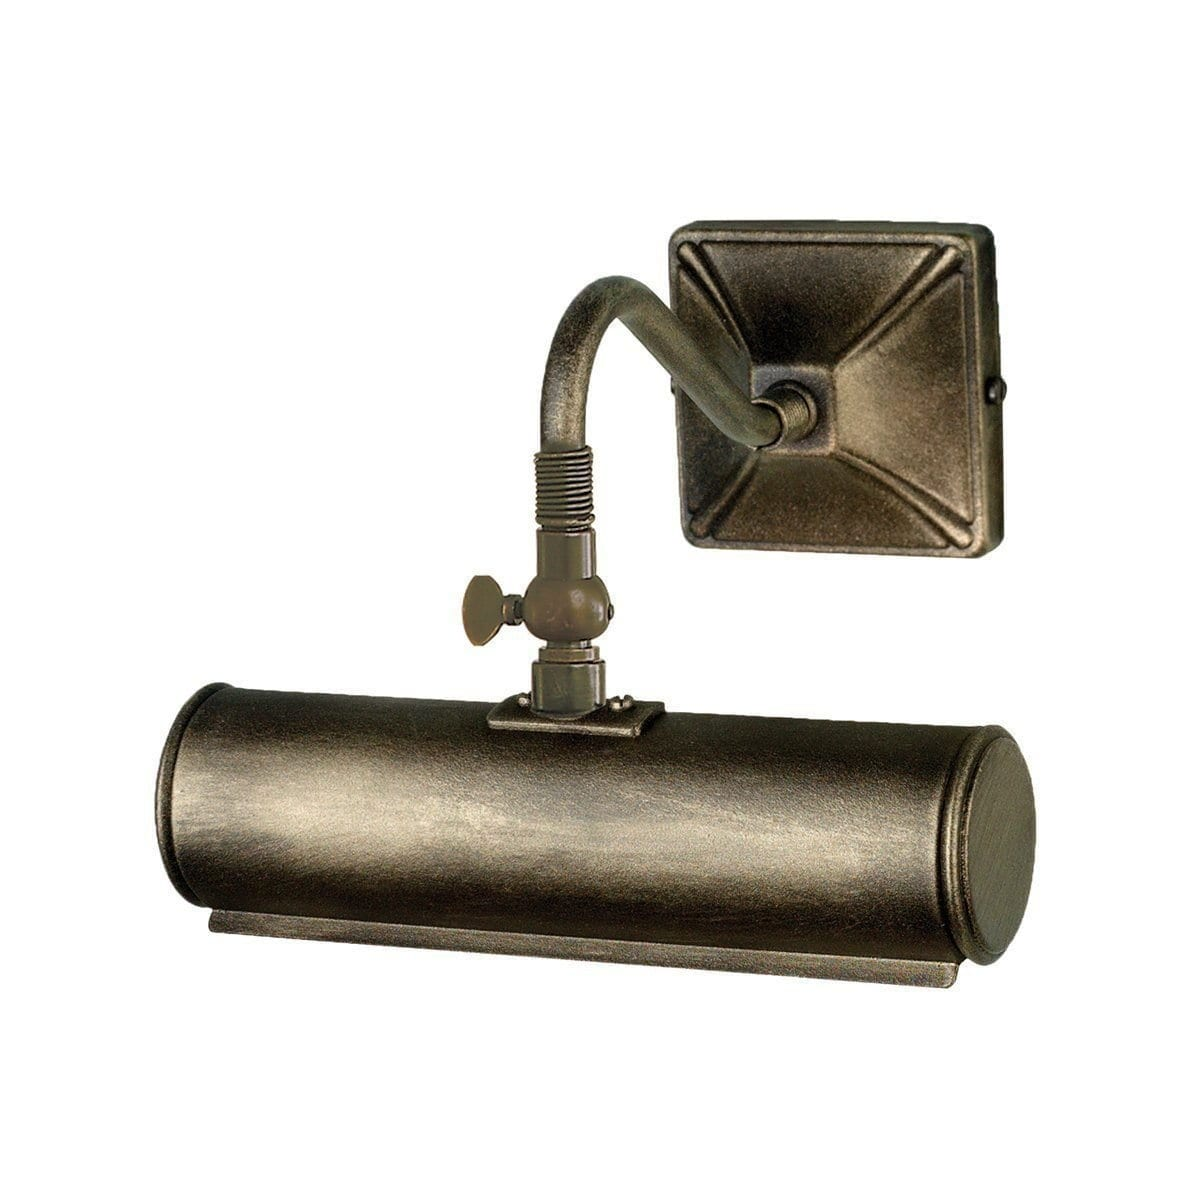 Traditional Wall Lights - Elstead Picture Lights Small Picture Light PL1/10 BLK/GOLD